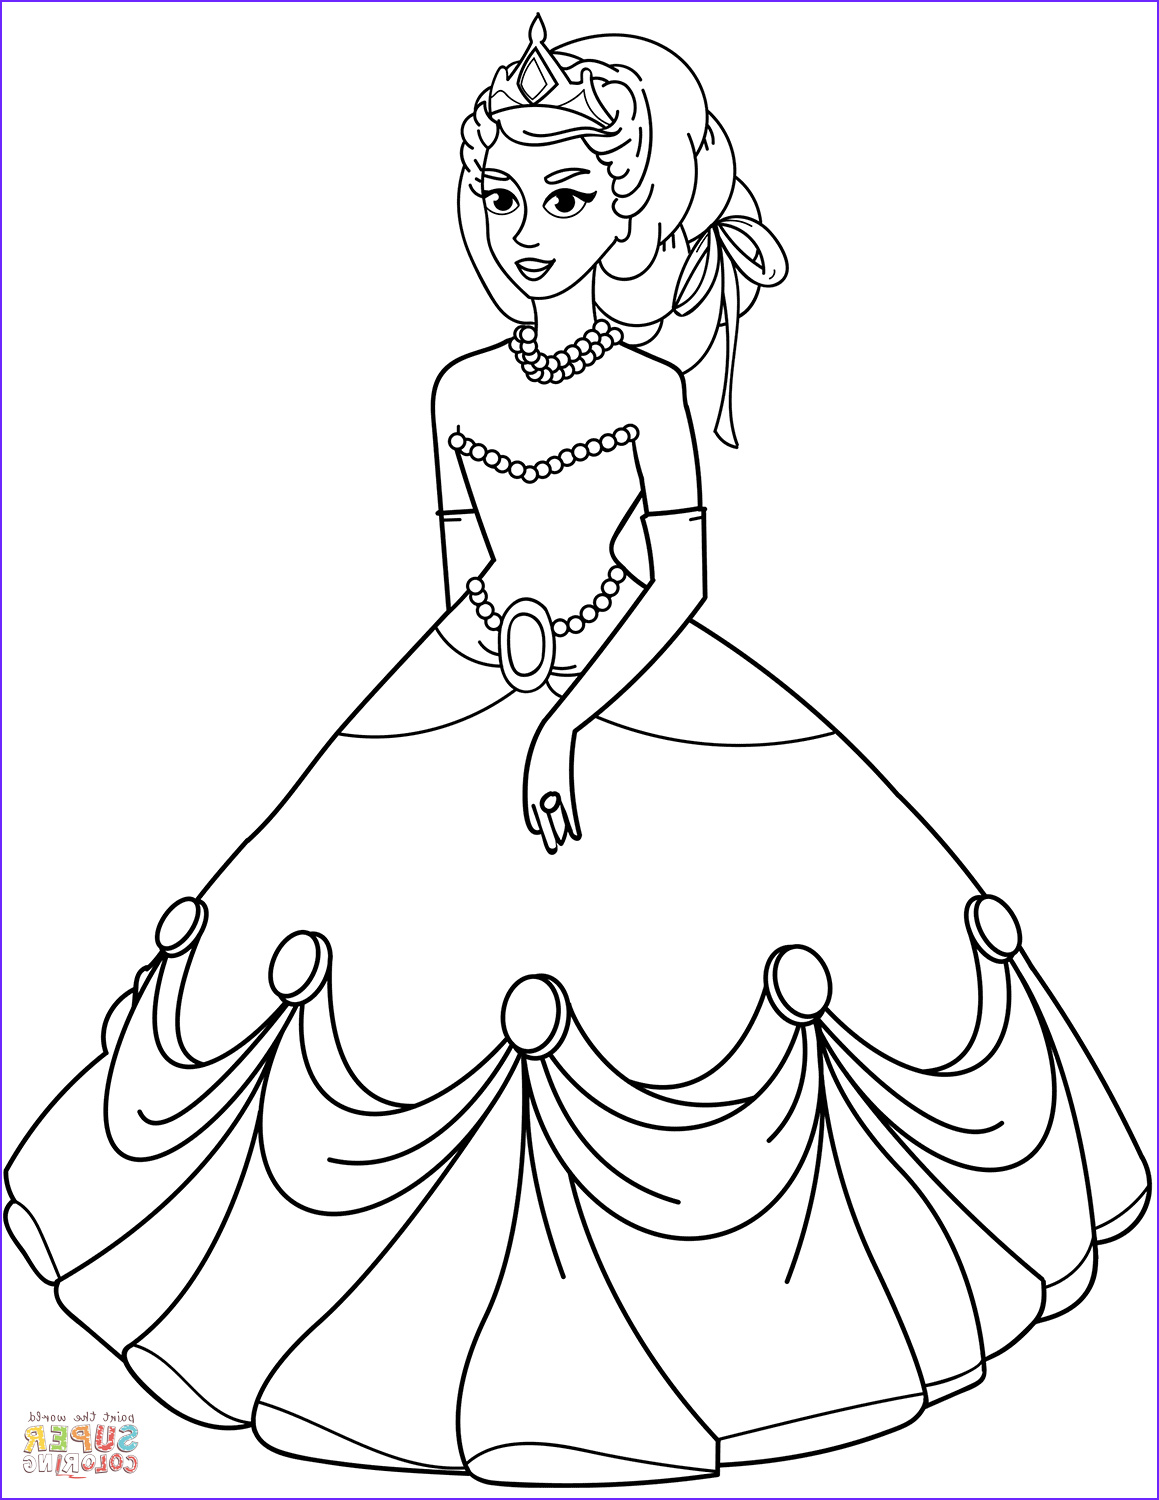 princess in ball gown dress